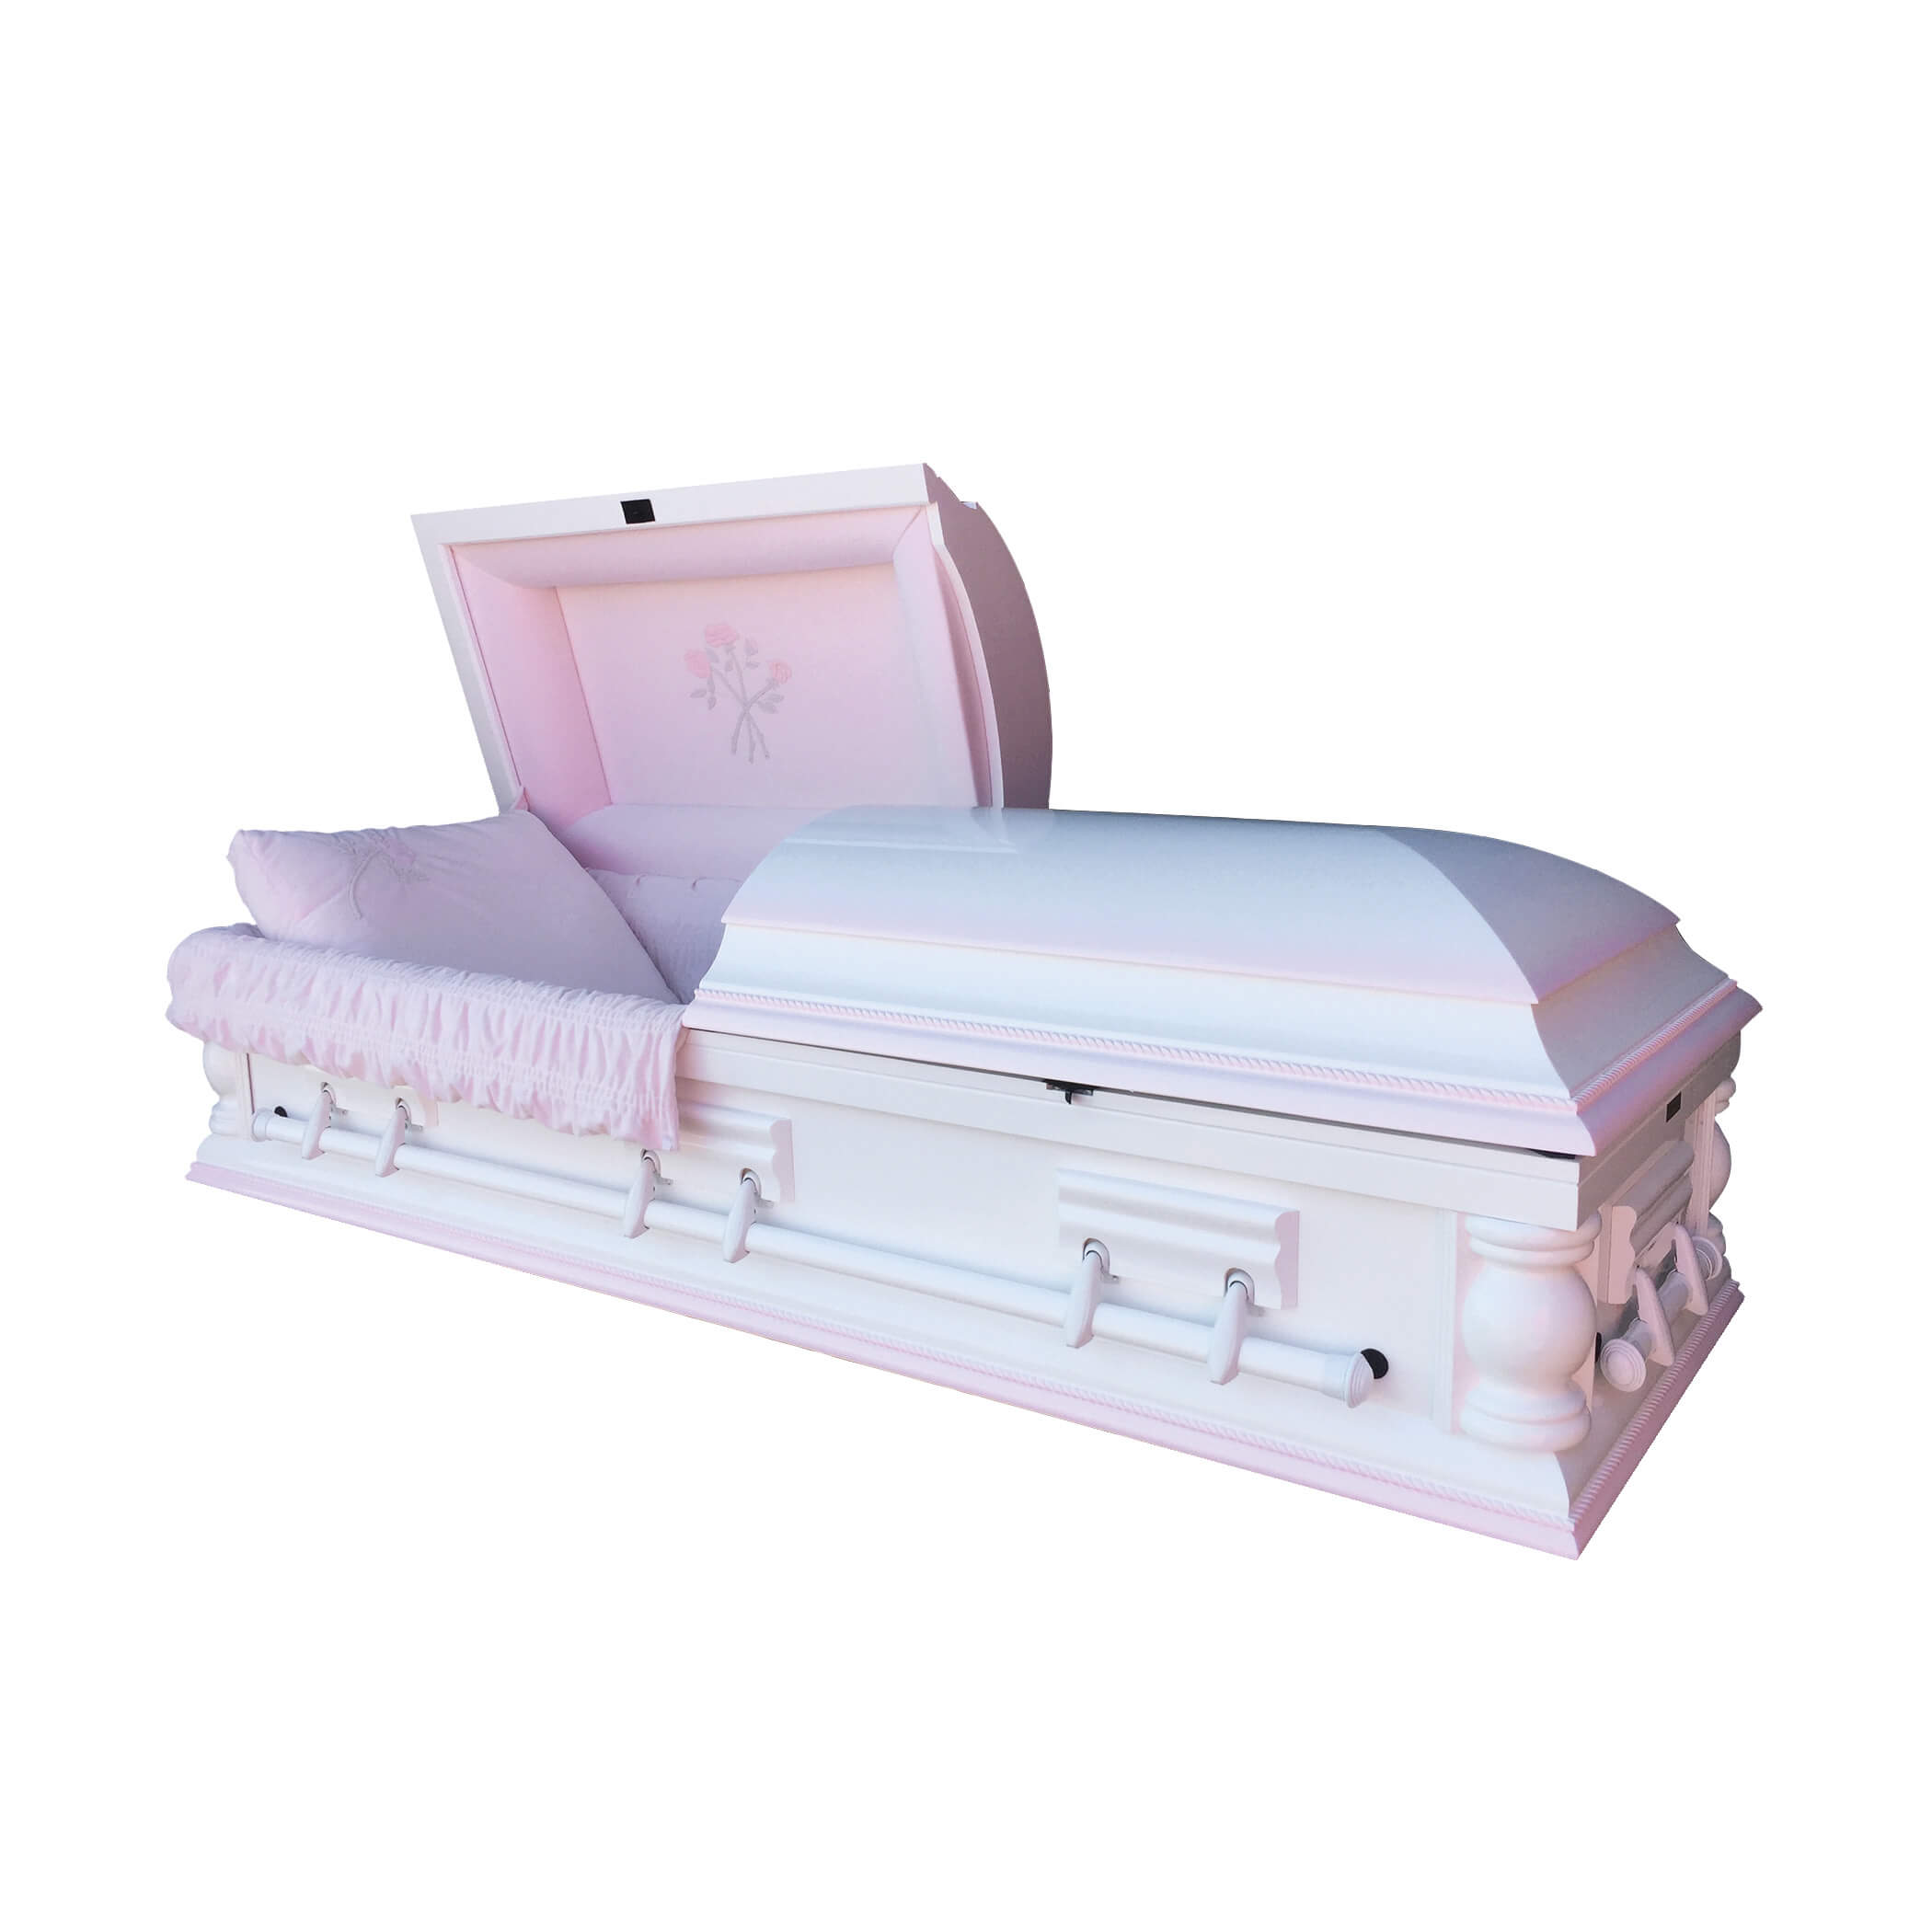 Mother Solid Poplar Hardwood Casket Sky Caskets